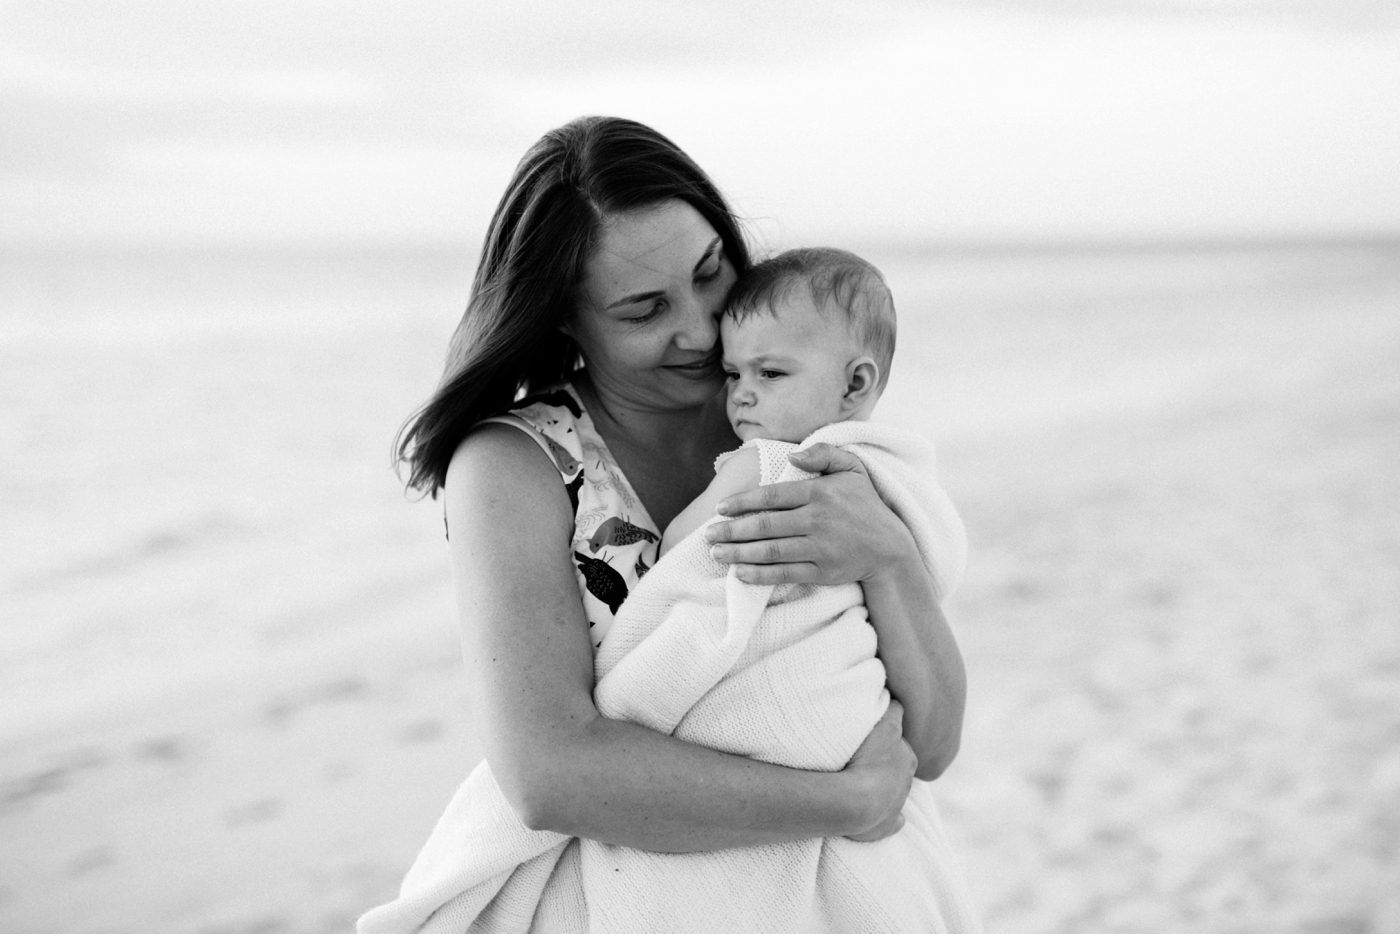 The Baillard Family - Perth Family Photographer - Perth family photography - Natural family photographer in Perth - Katherine Schultz - www.katherineschultzphotography.com 3